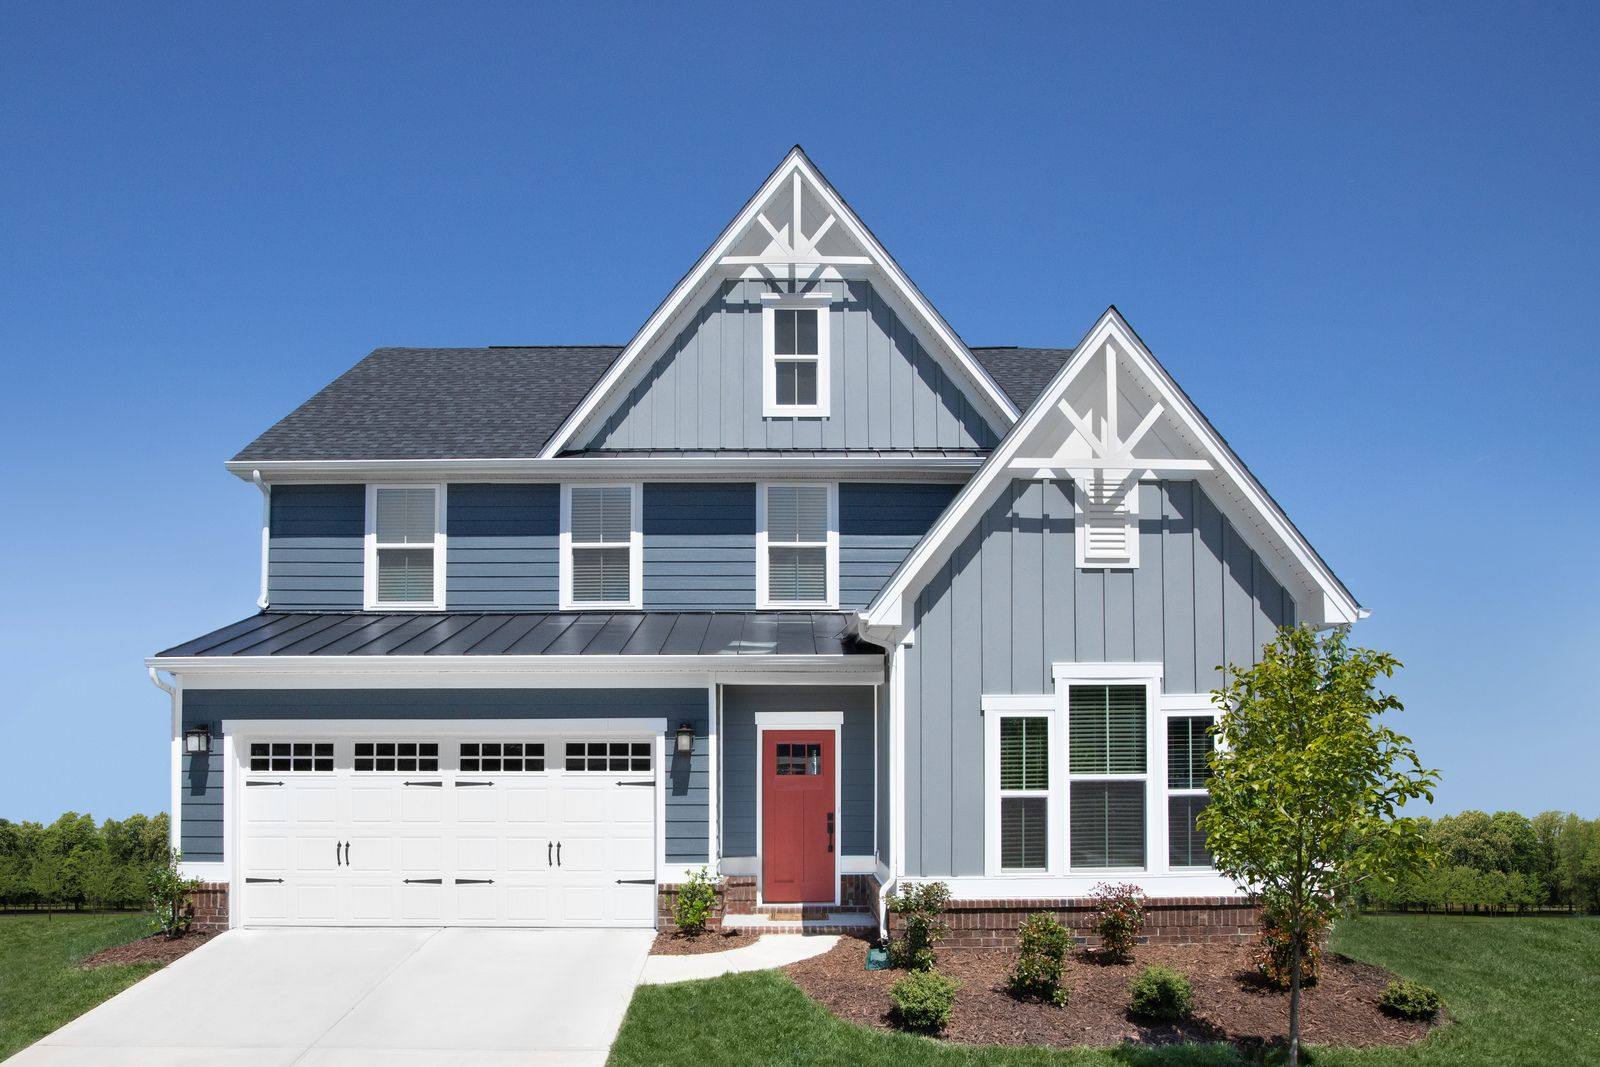 AUTUMN VIEW - NEW HOMESITES COMING SOON FROM MID $400S:Scenic community located at Pettus Rd & Nolensville Rd w/ private homesites, upgraded features, & 1st floor owner's suite options minutes from conveniences. Join the VIP list today!